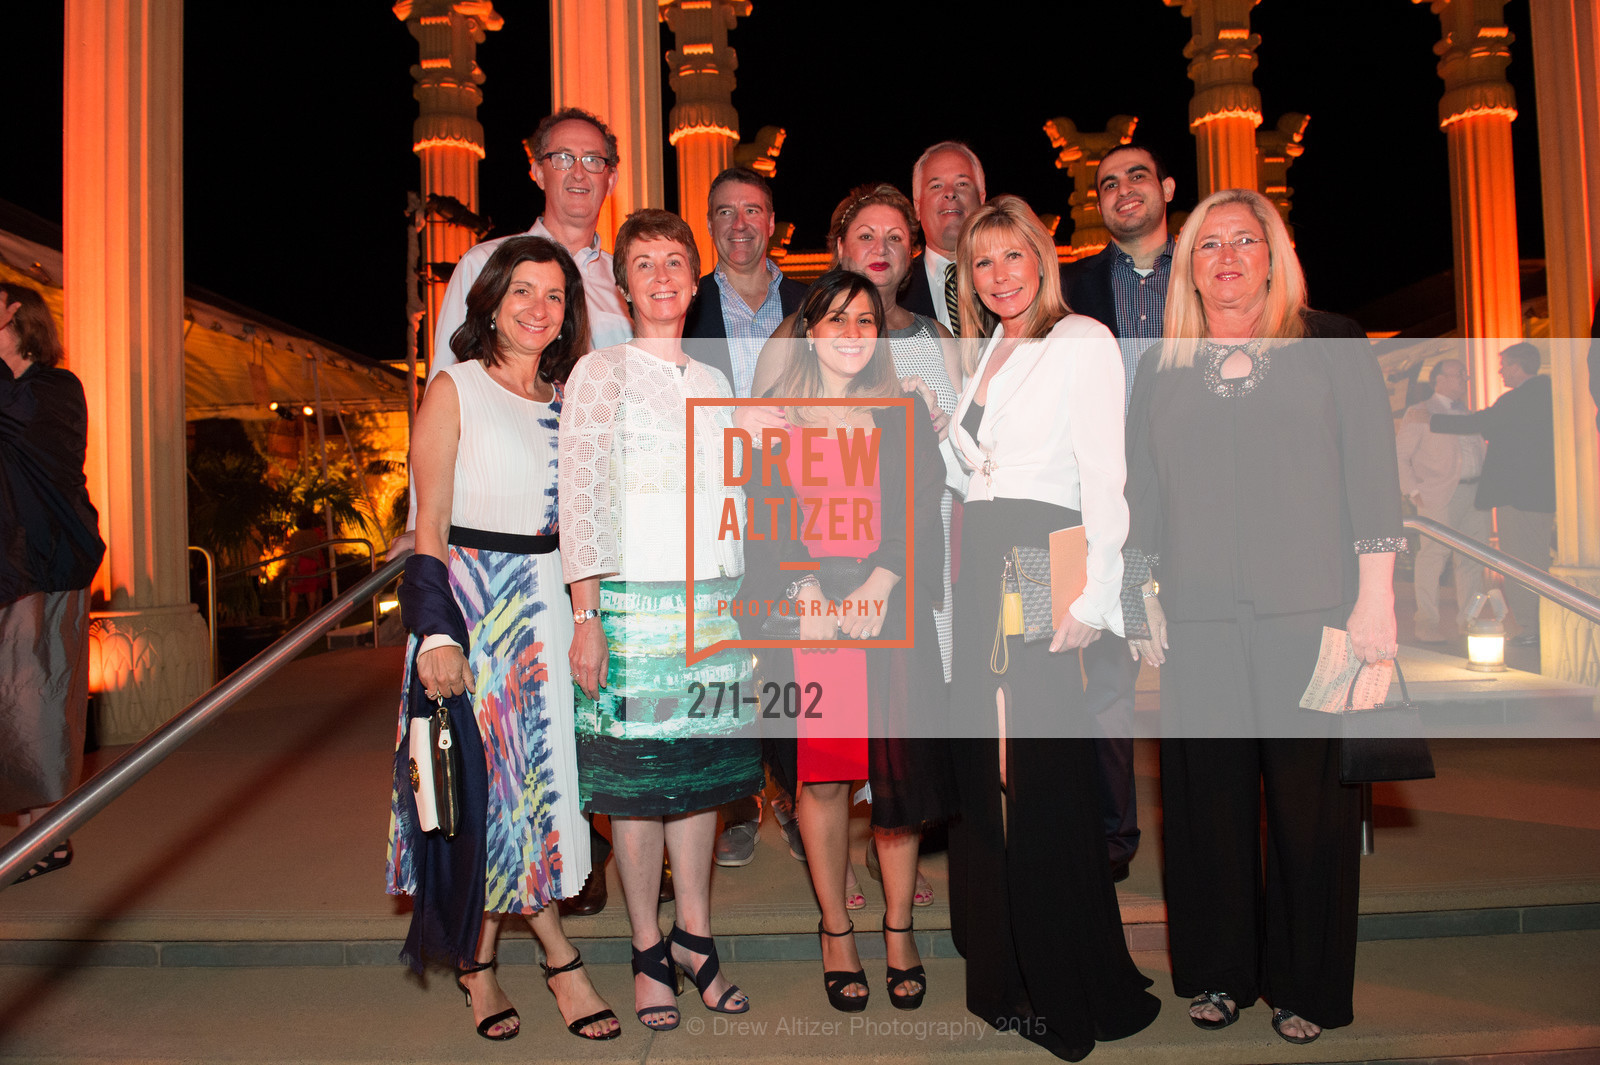 Nellie Keyhani, Zoreh Tamjidi, Tim McCarthy, Navid Firoozabady, Karon McCarthy, Festival del Sole Patron Dinner at Darioush Winery, Darioush Winery. 4240 Silverado Trail, July 24th, 2015,Drew Altizer, Drew Altizer Photography, full-service agency, private events, San Francisco photographer, photographer california